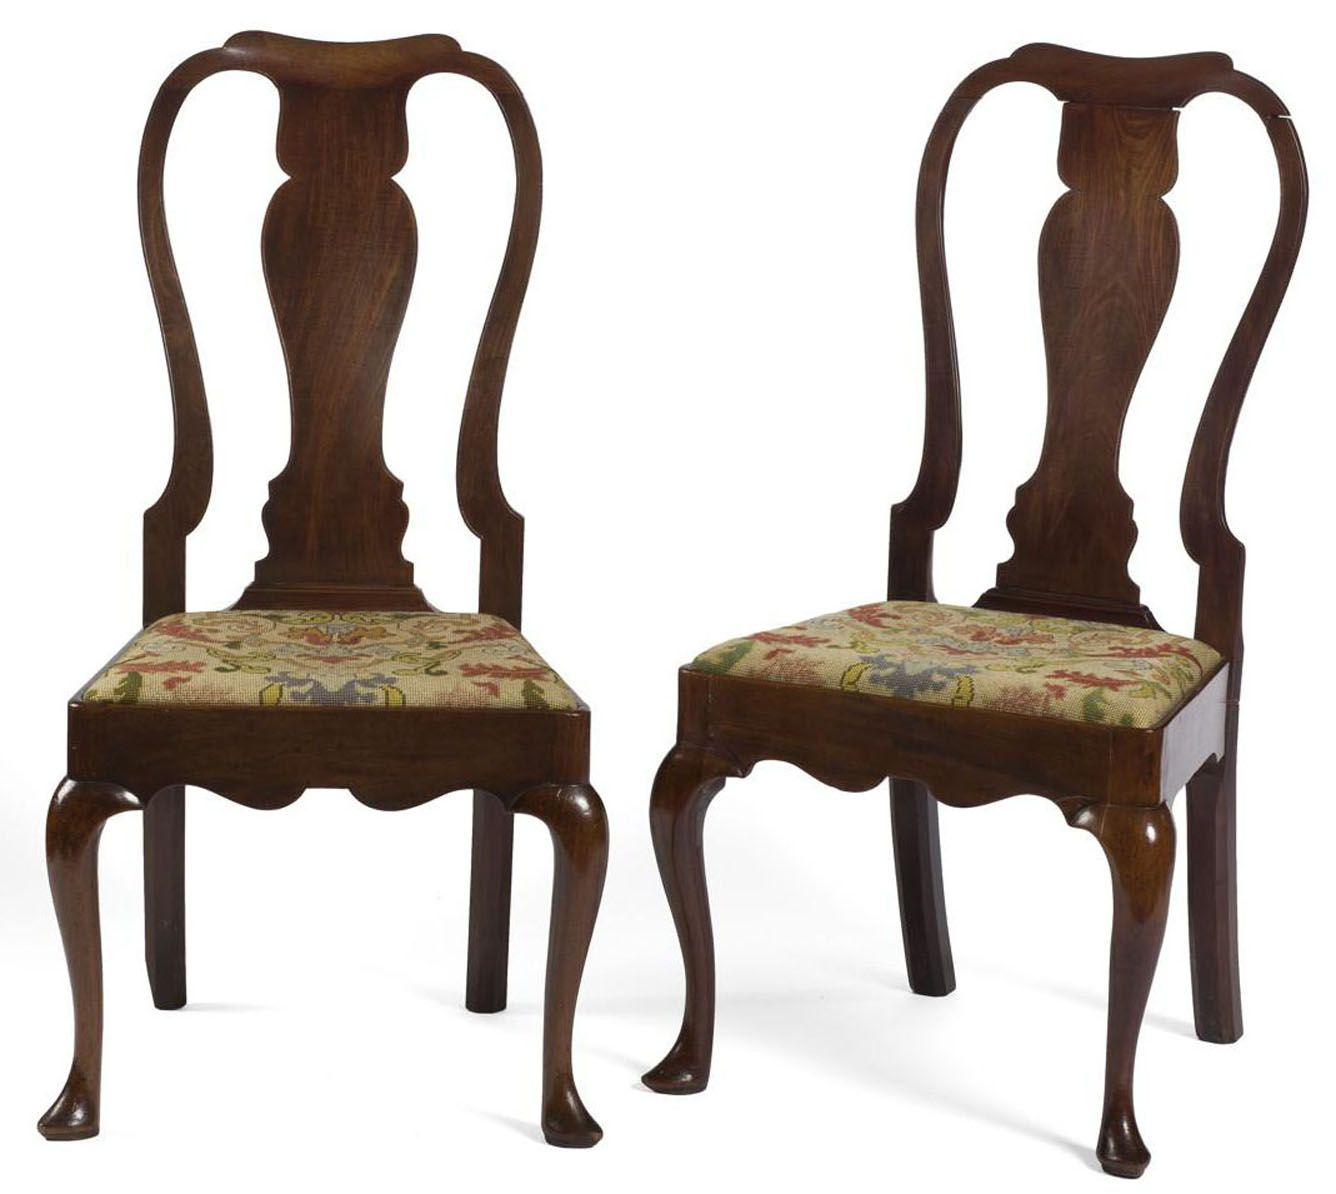 Antique shaker chairs - Antique Shaker Chairs 26